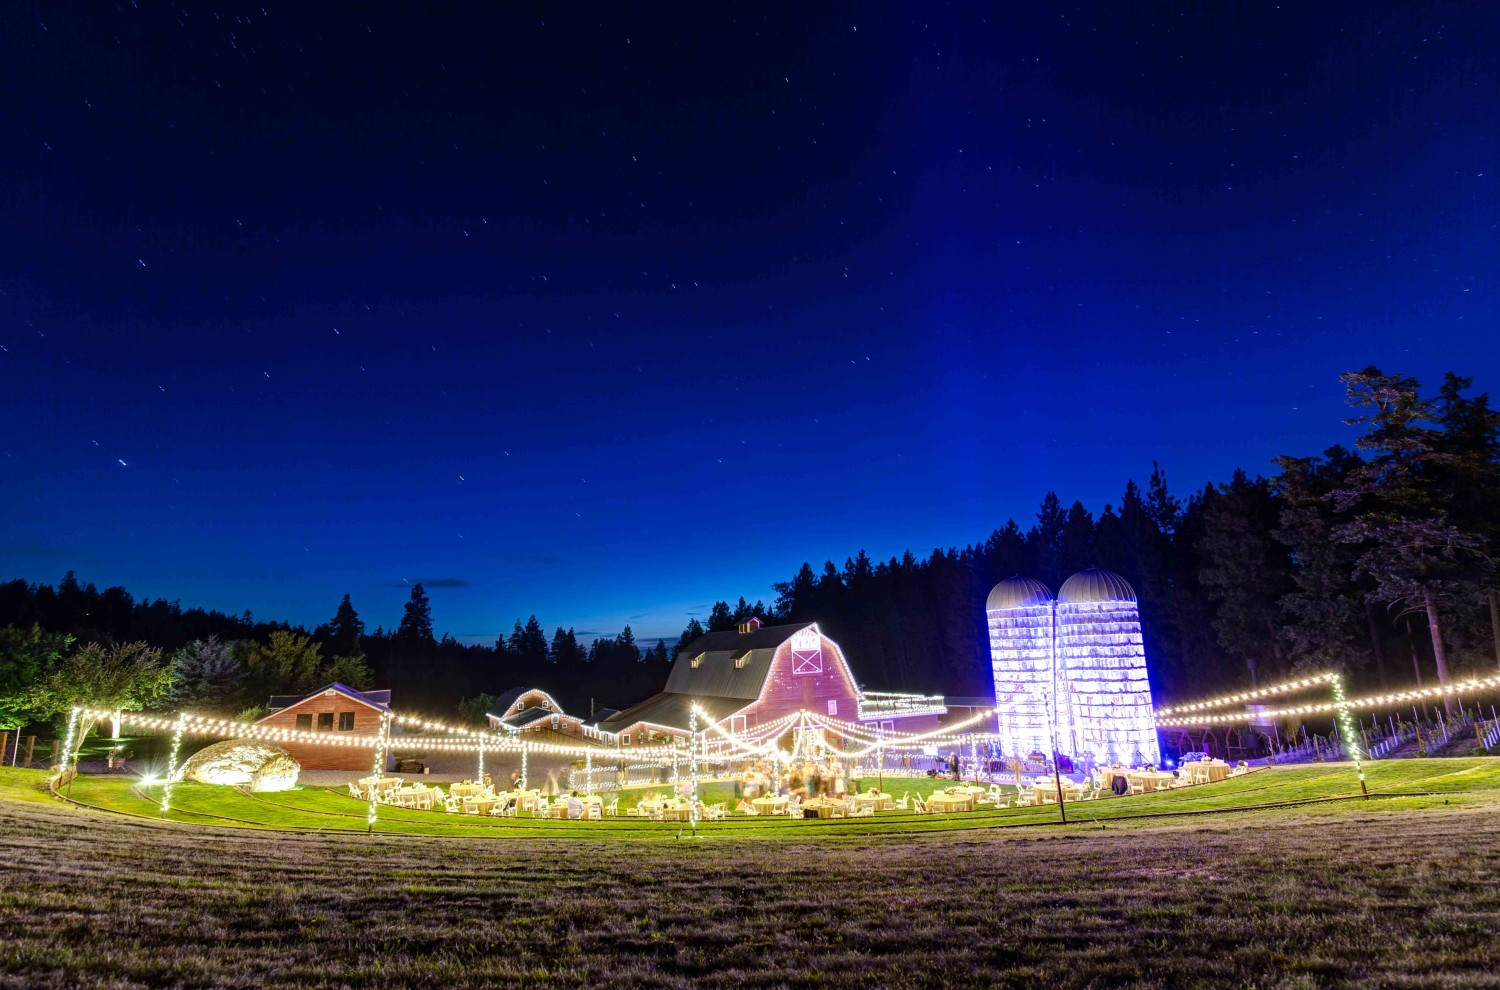 Wide shot of Settlers Creek at night, the Coeur d'Alene wedding Venue